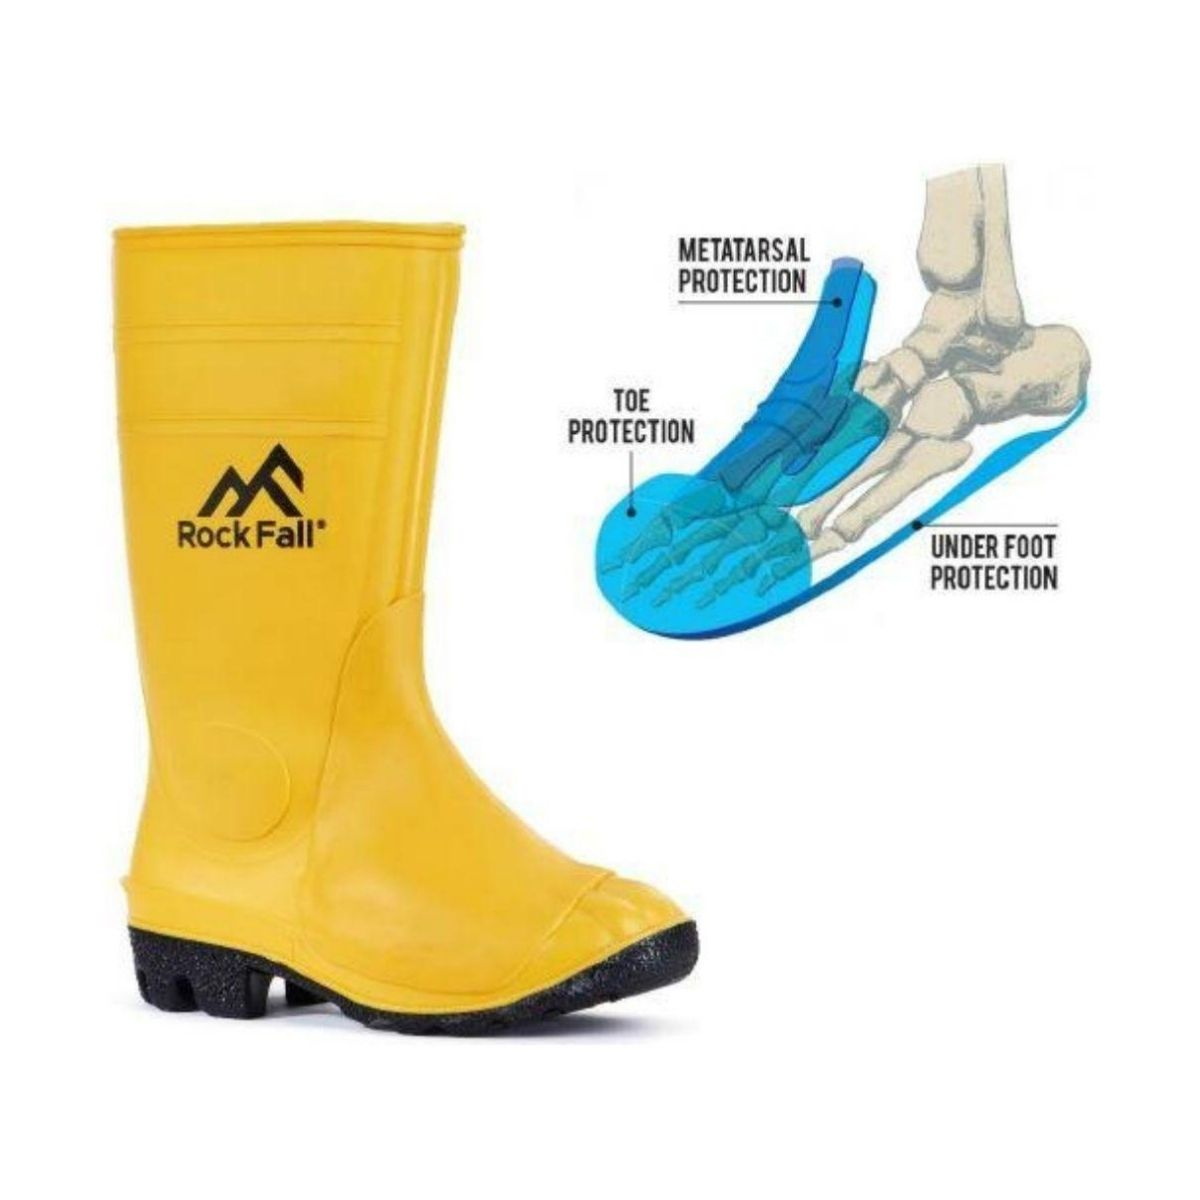 SF0026 PVC Safety Wellington with Internal Metatarsal Protection Rated to 800 Bar